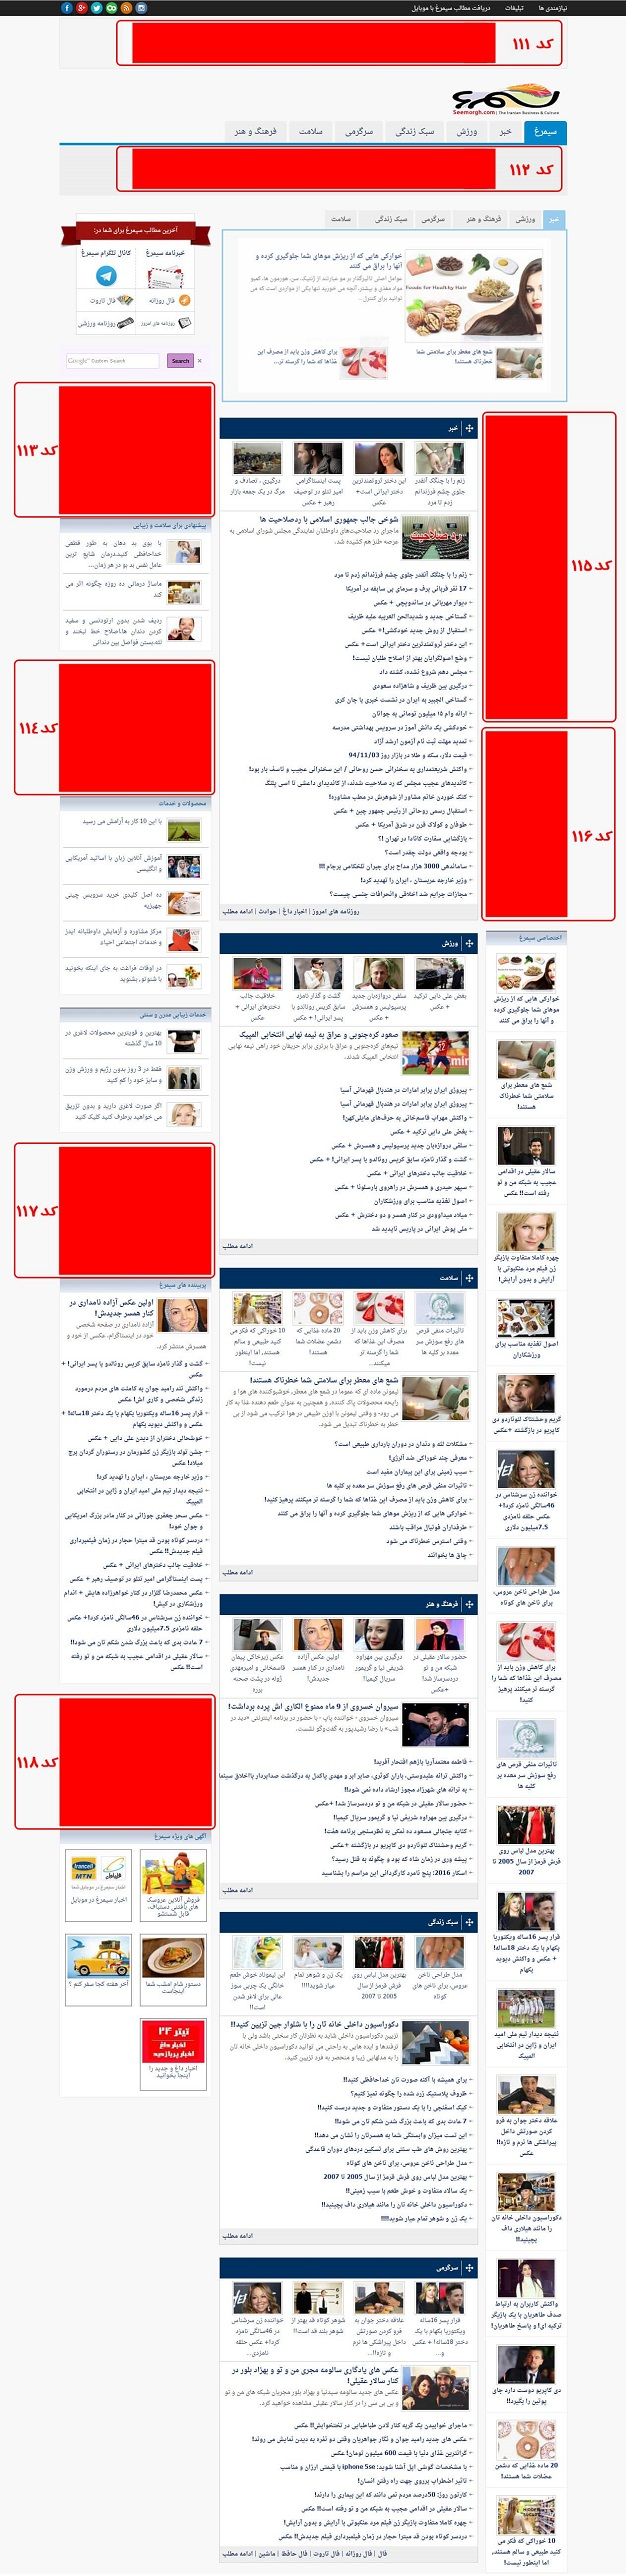 1-seemorgh-banner-front-page.jpg